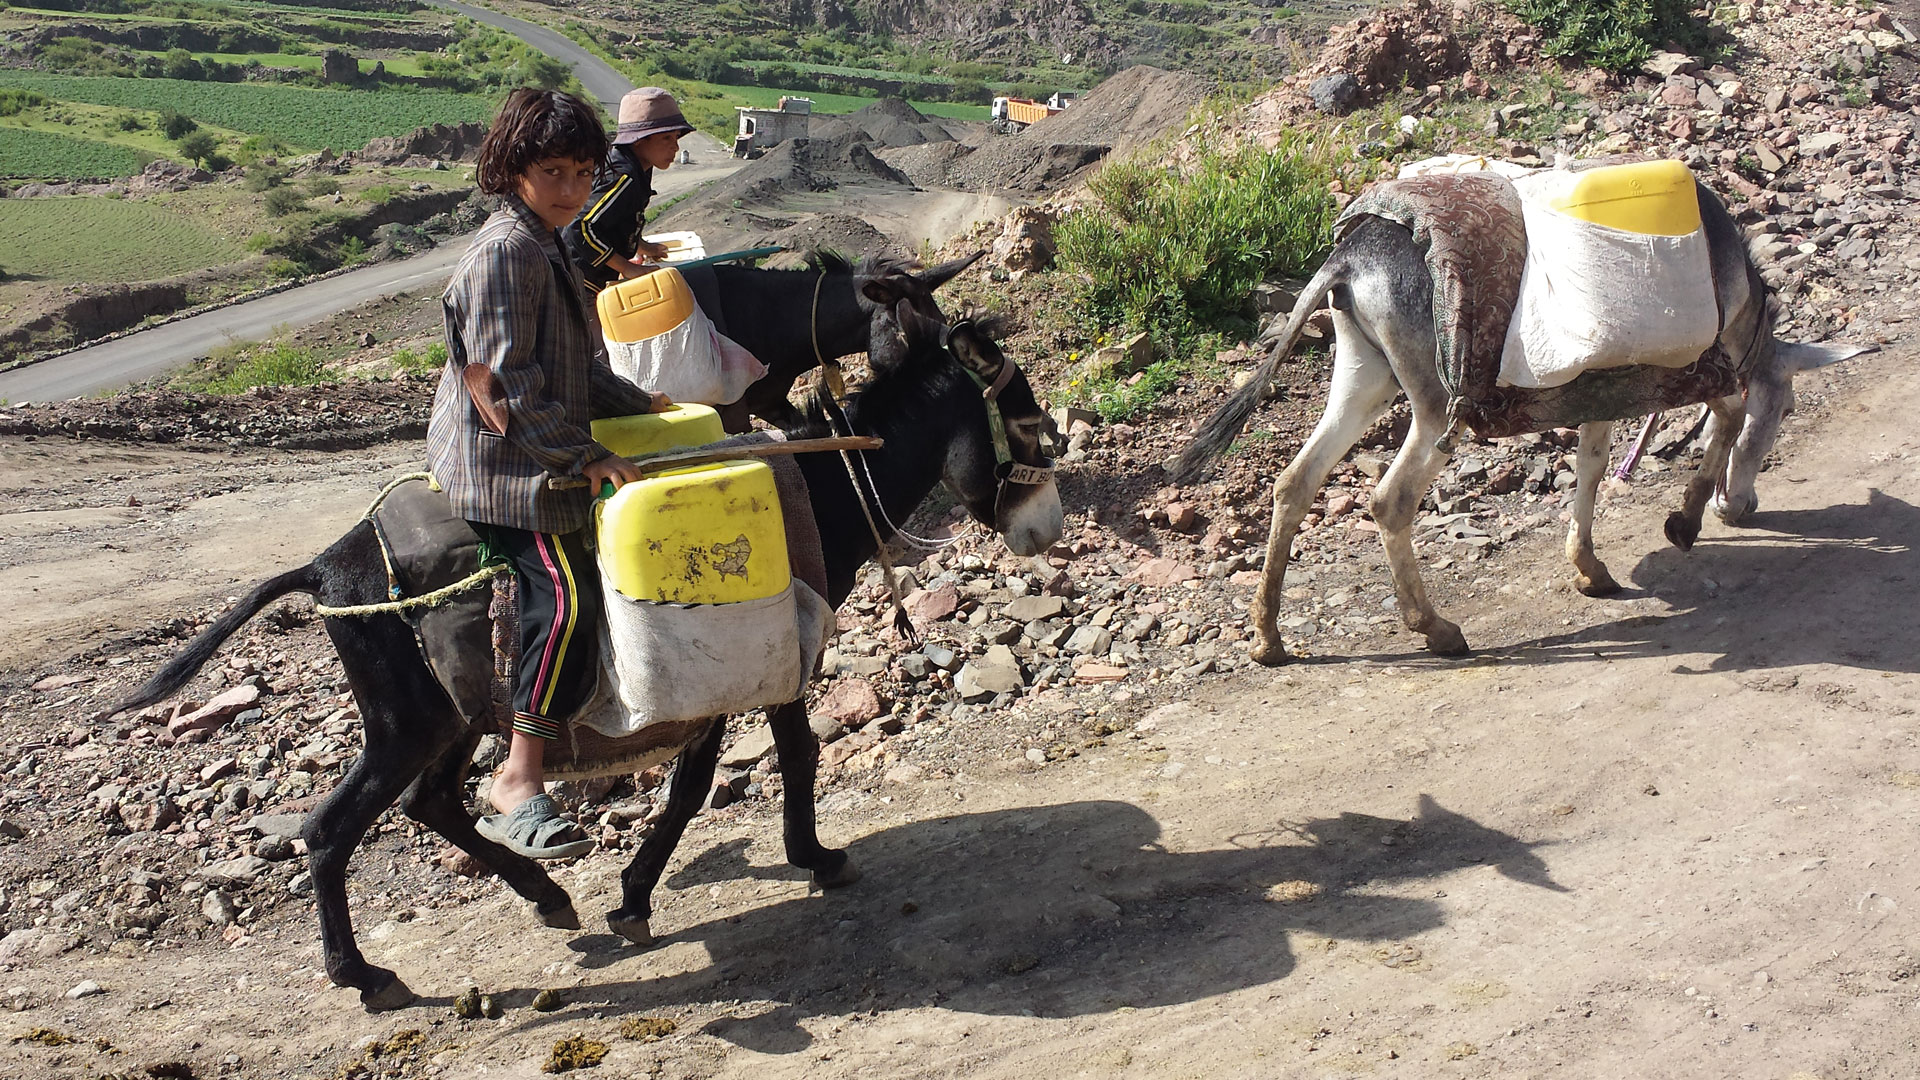 Donkeys are one of the main transport vehicles in Yemen, boys fetching water